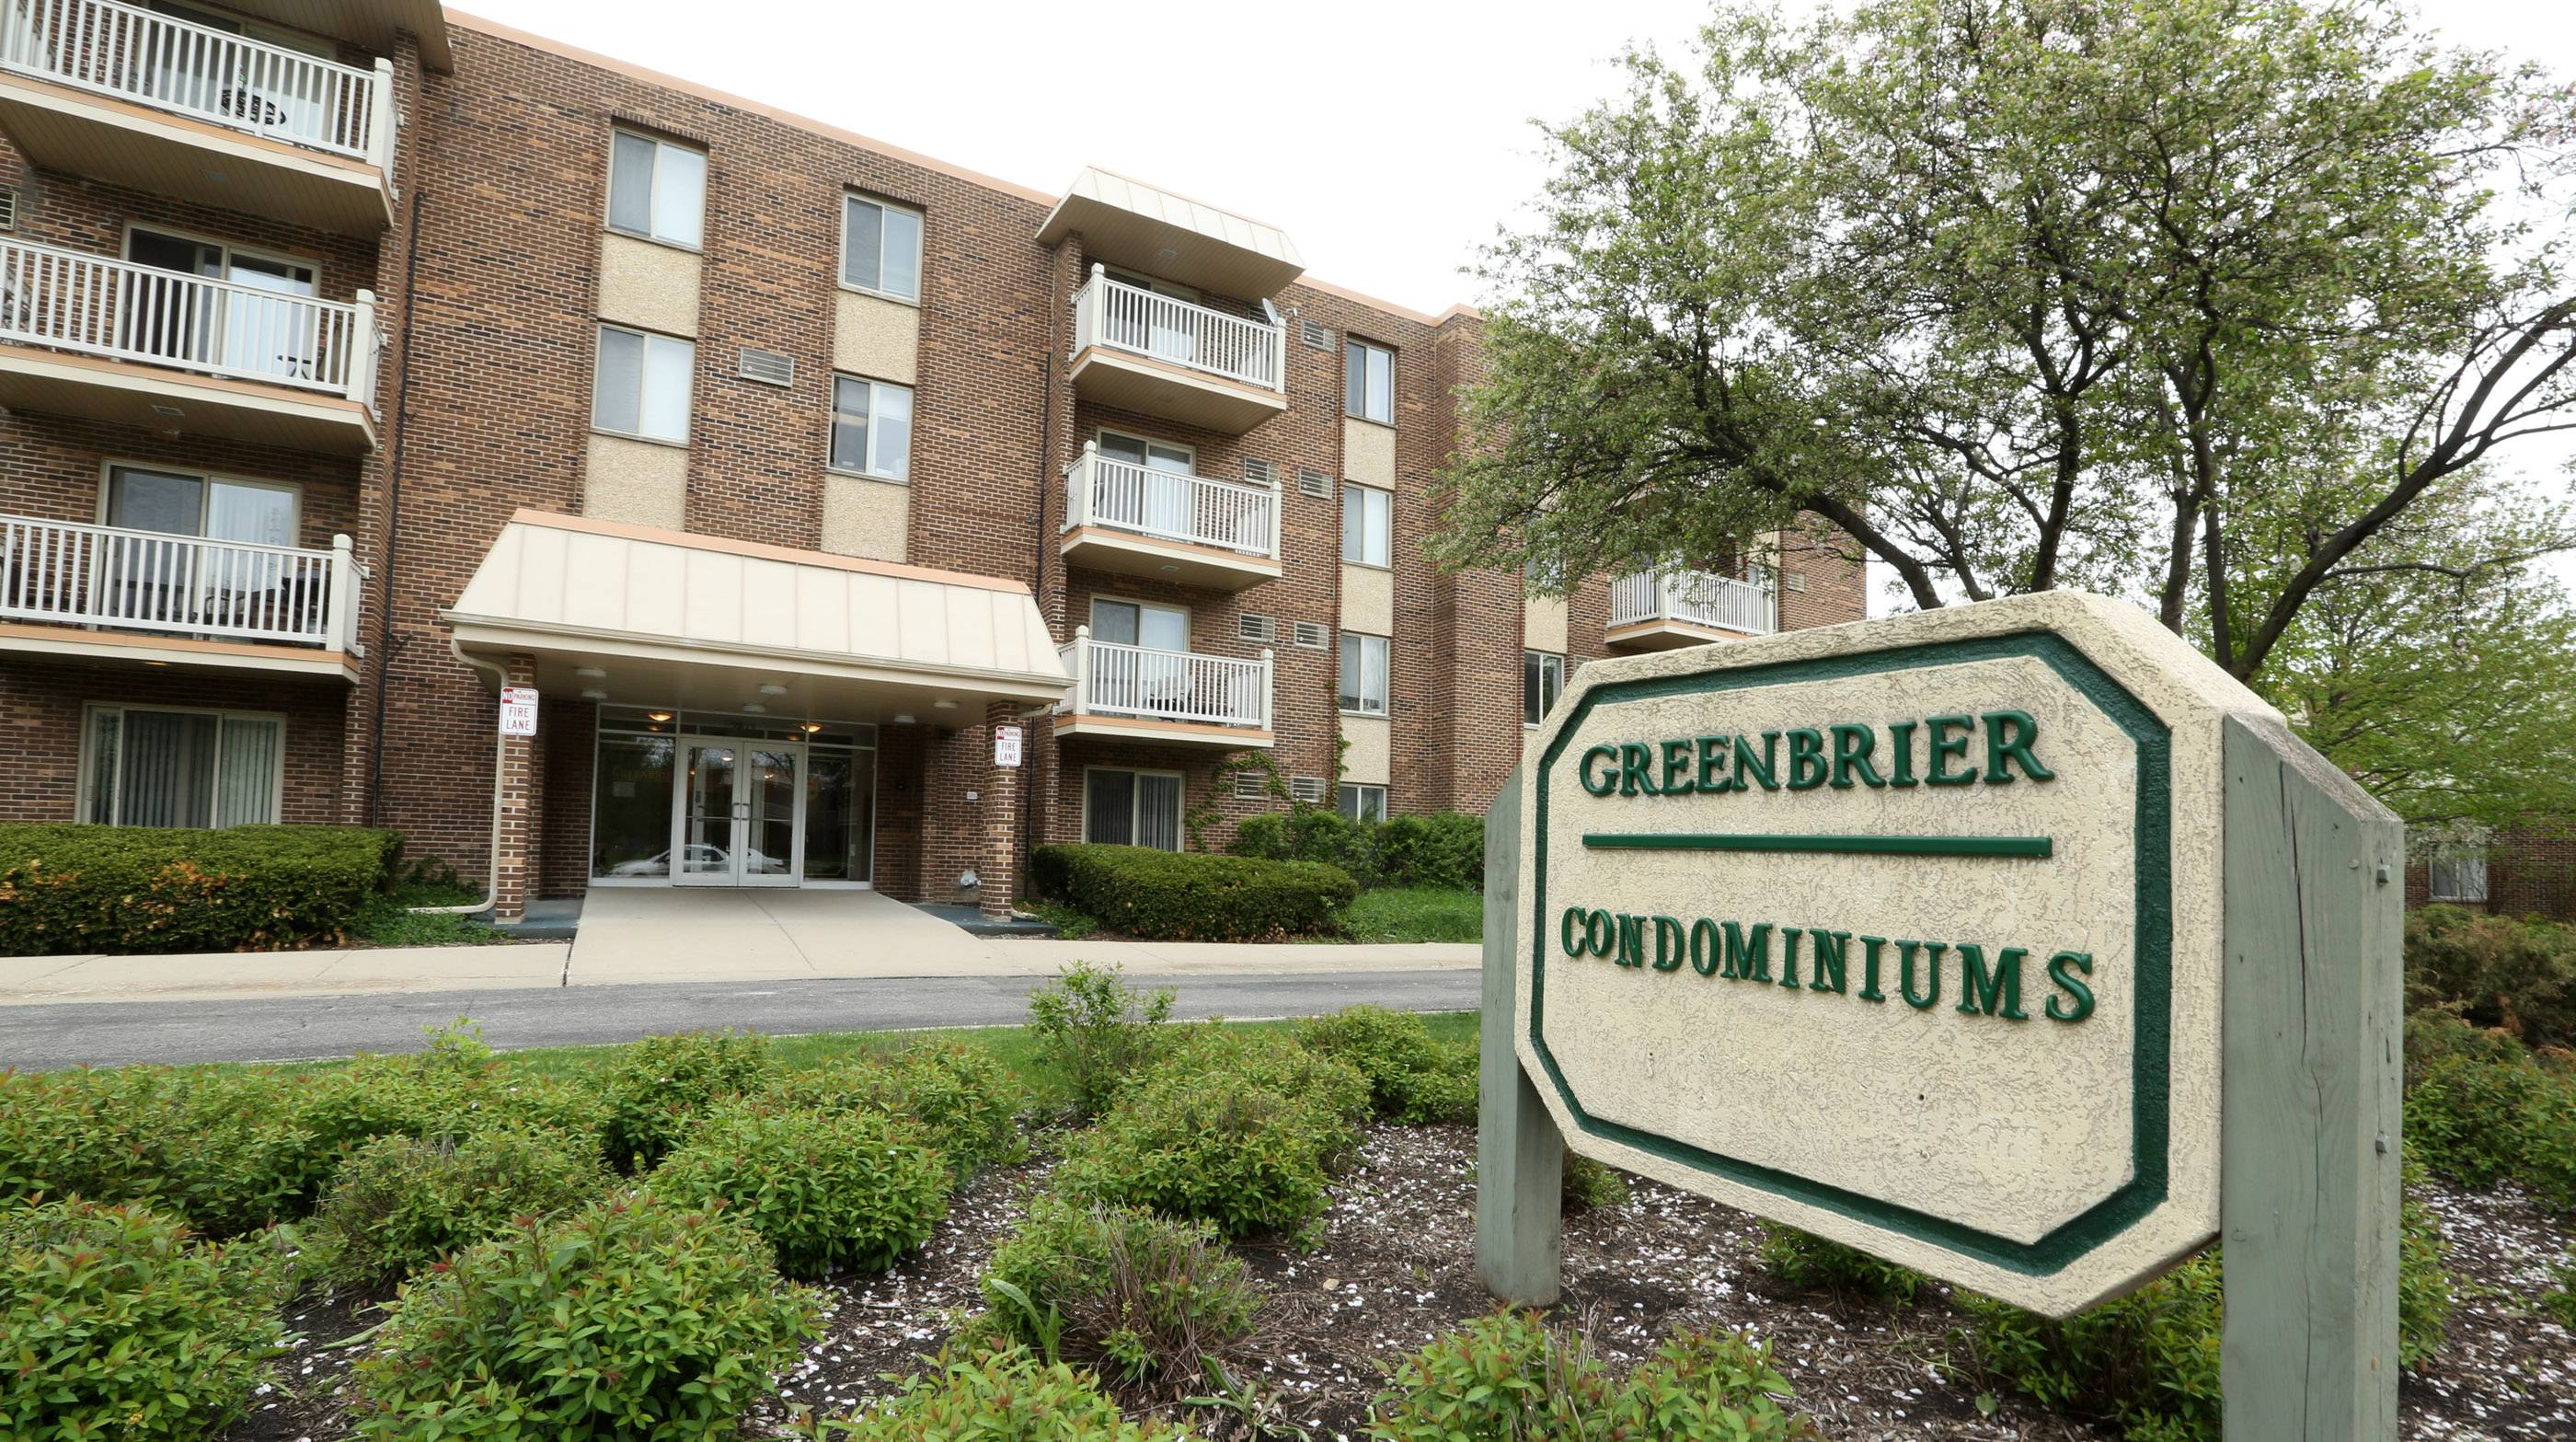 Greenbrier Condominiums are a part of the Greenwood Place neighborhood.